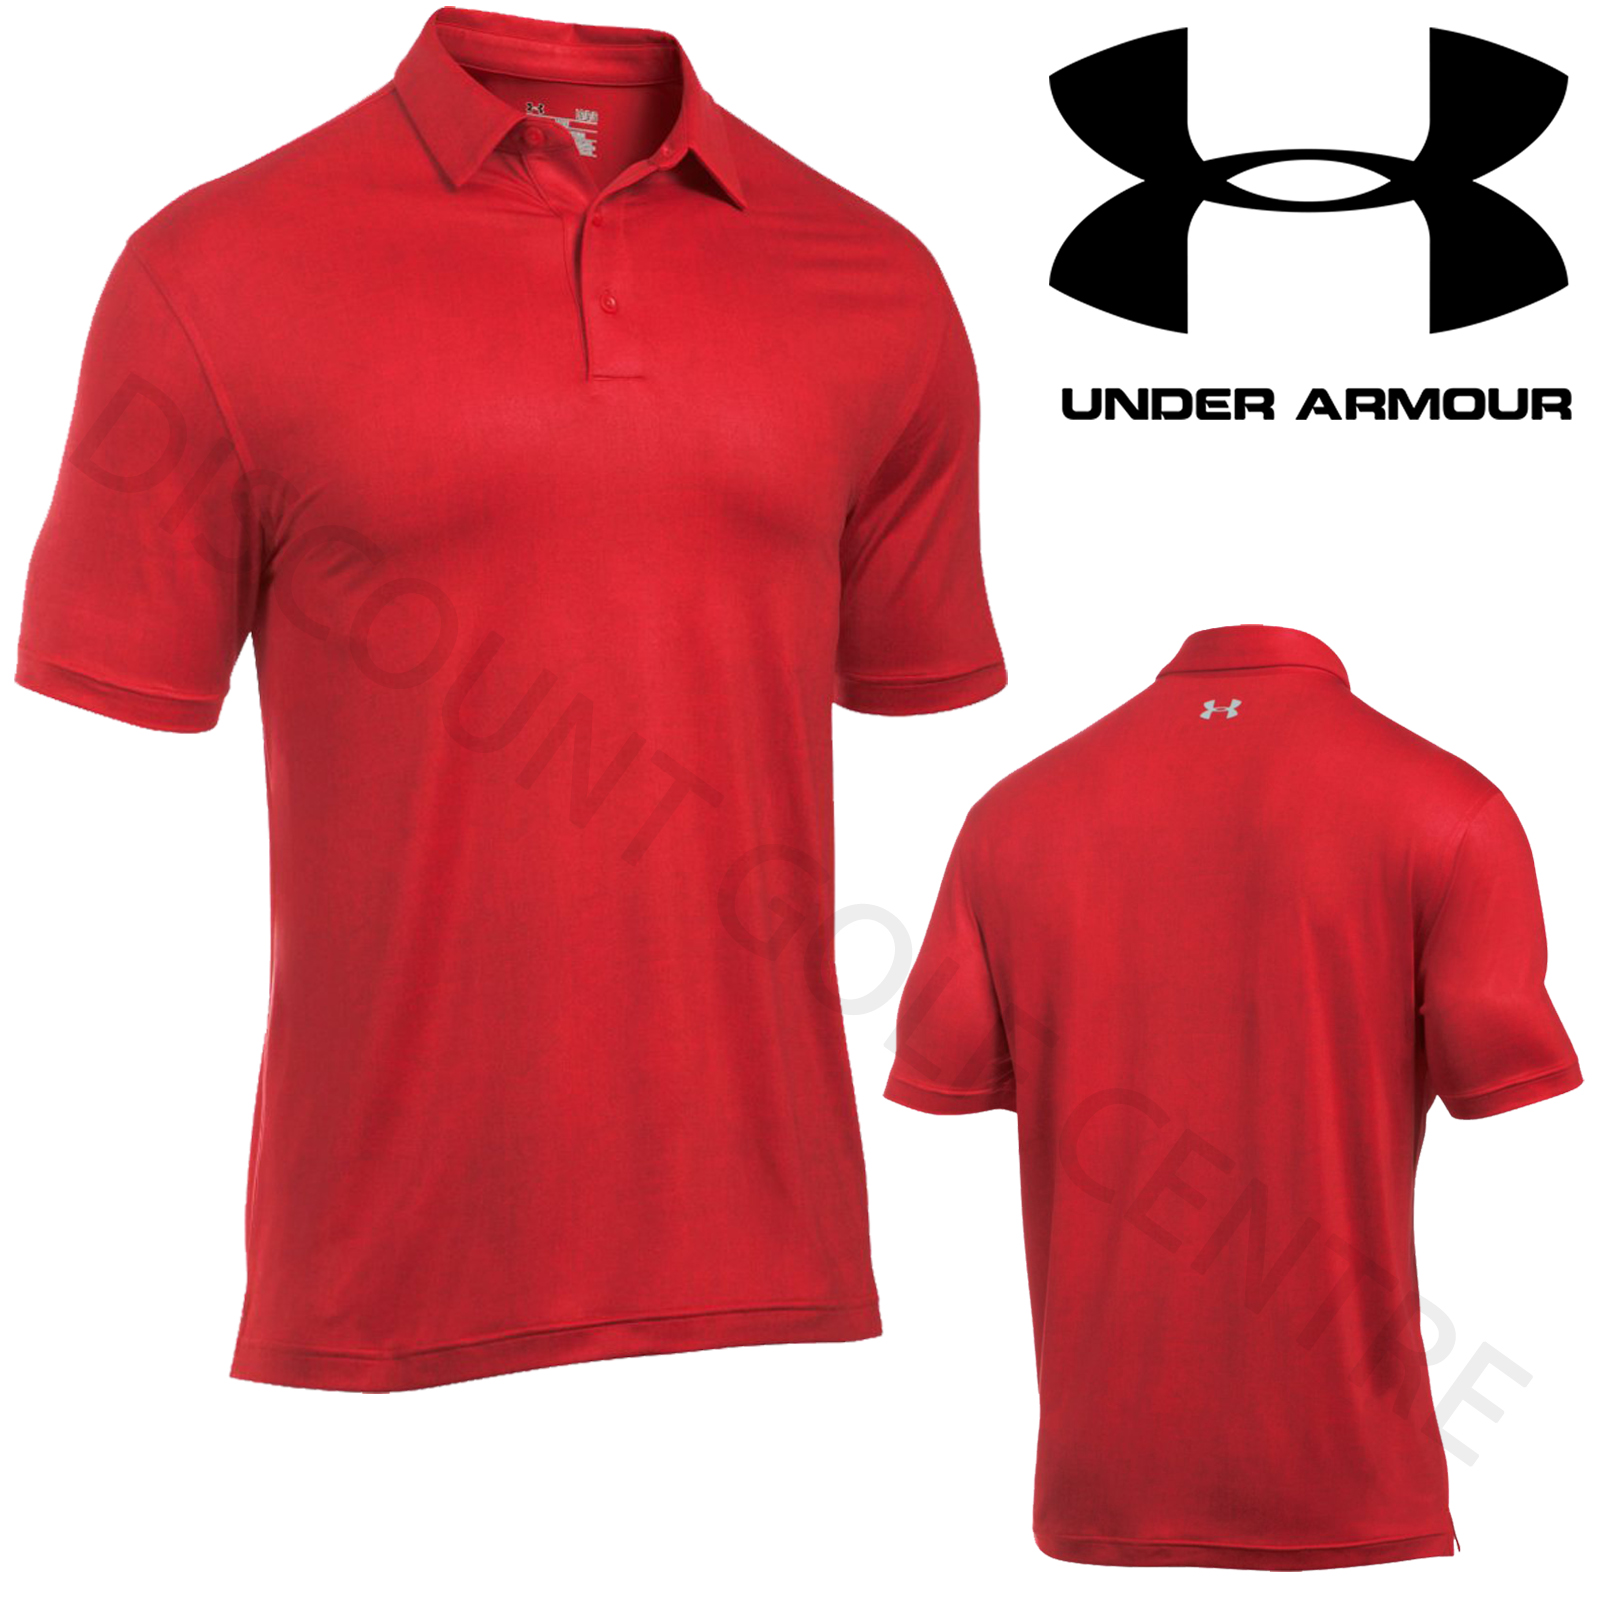 Under Armour Mens Polo Shirts Clearance Rldm